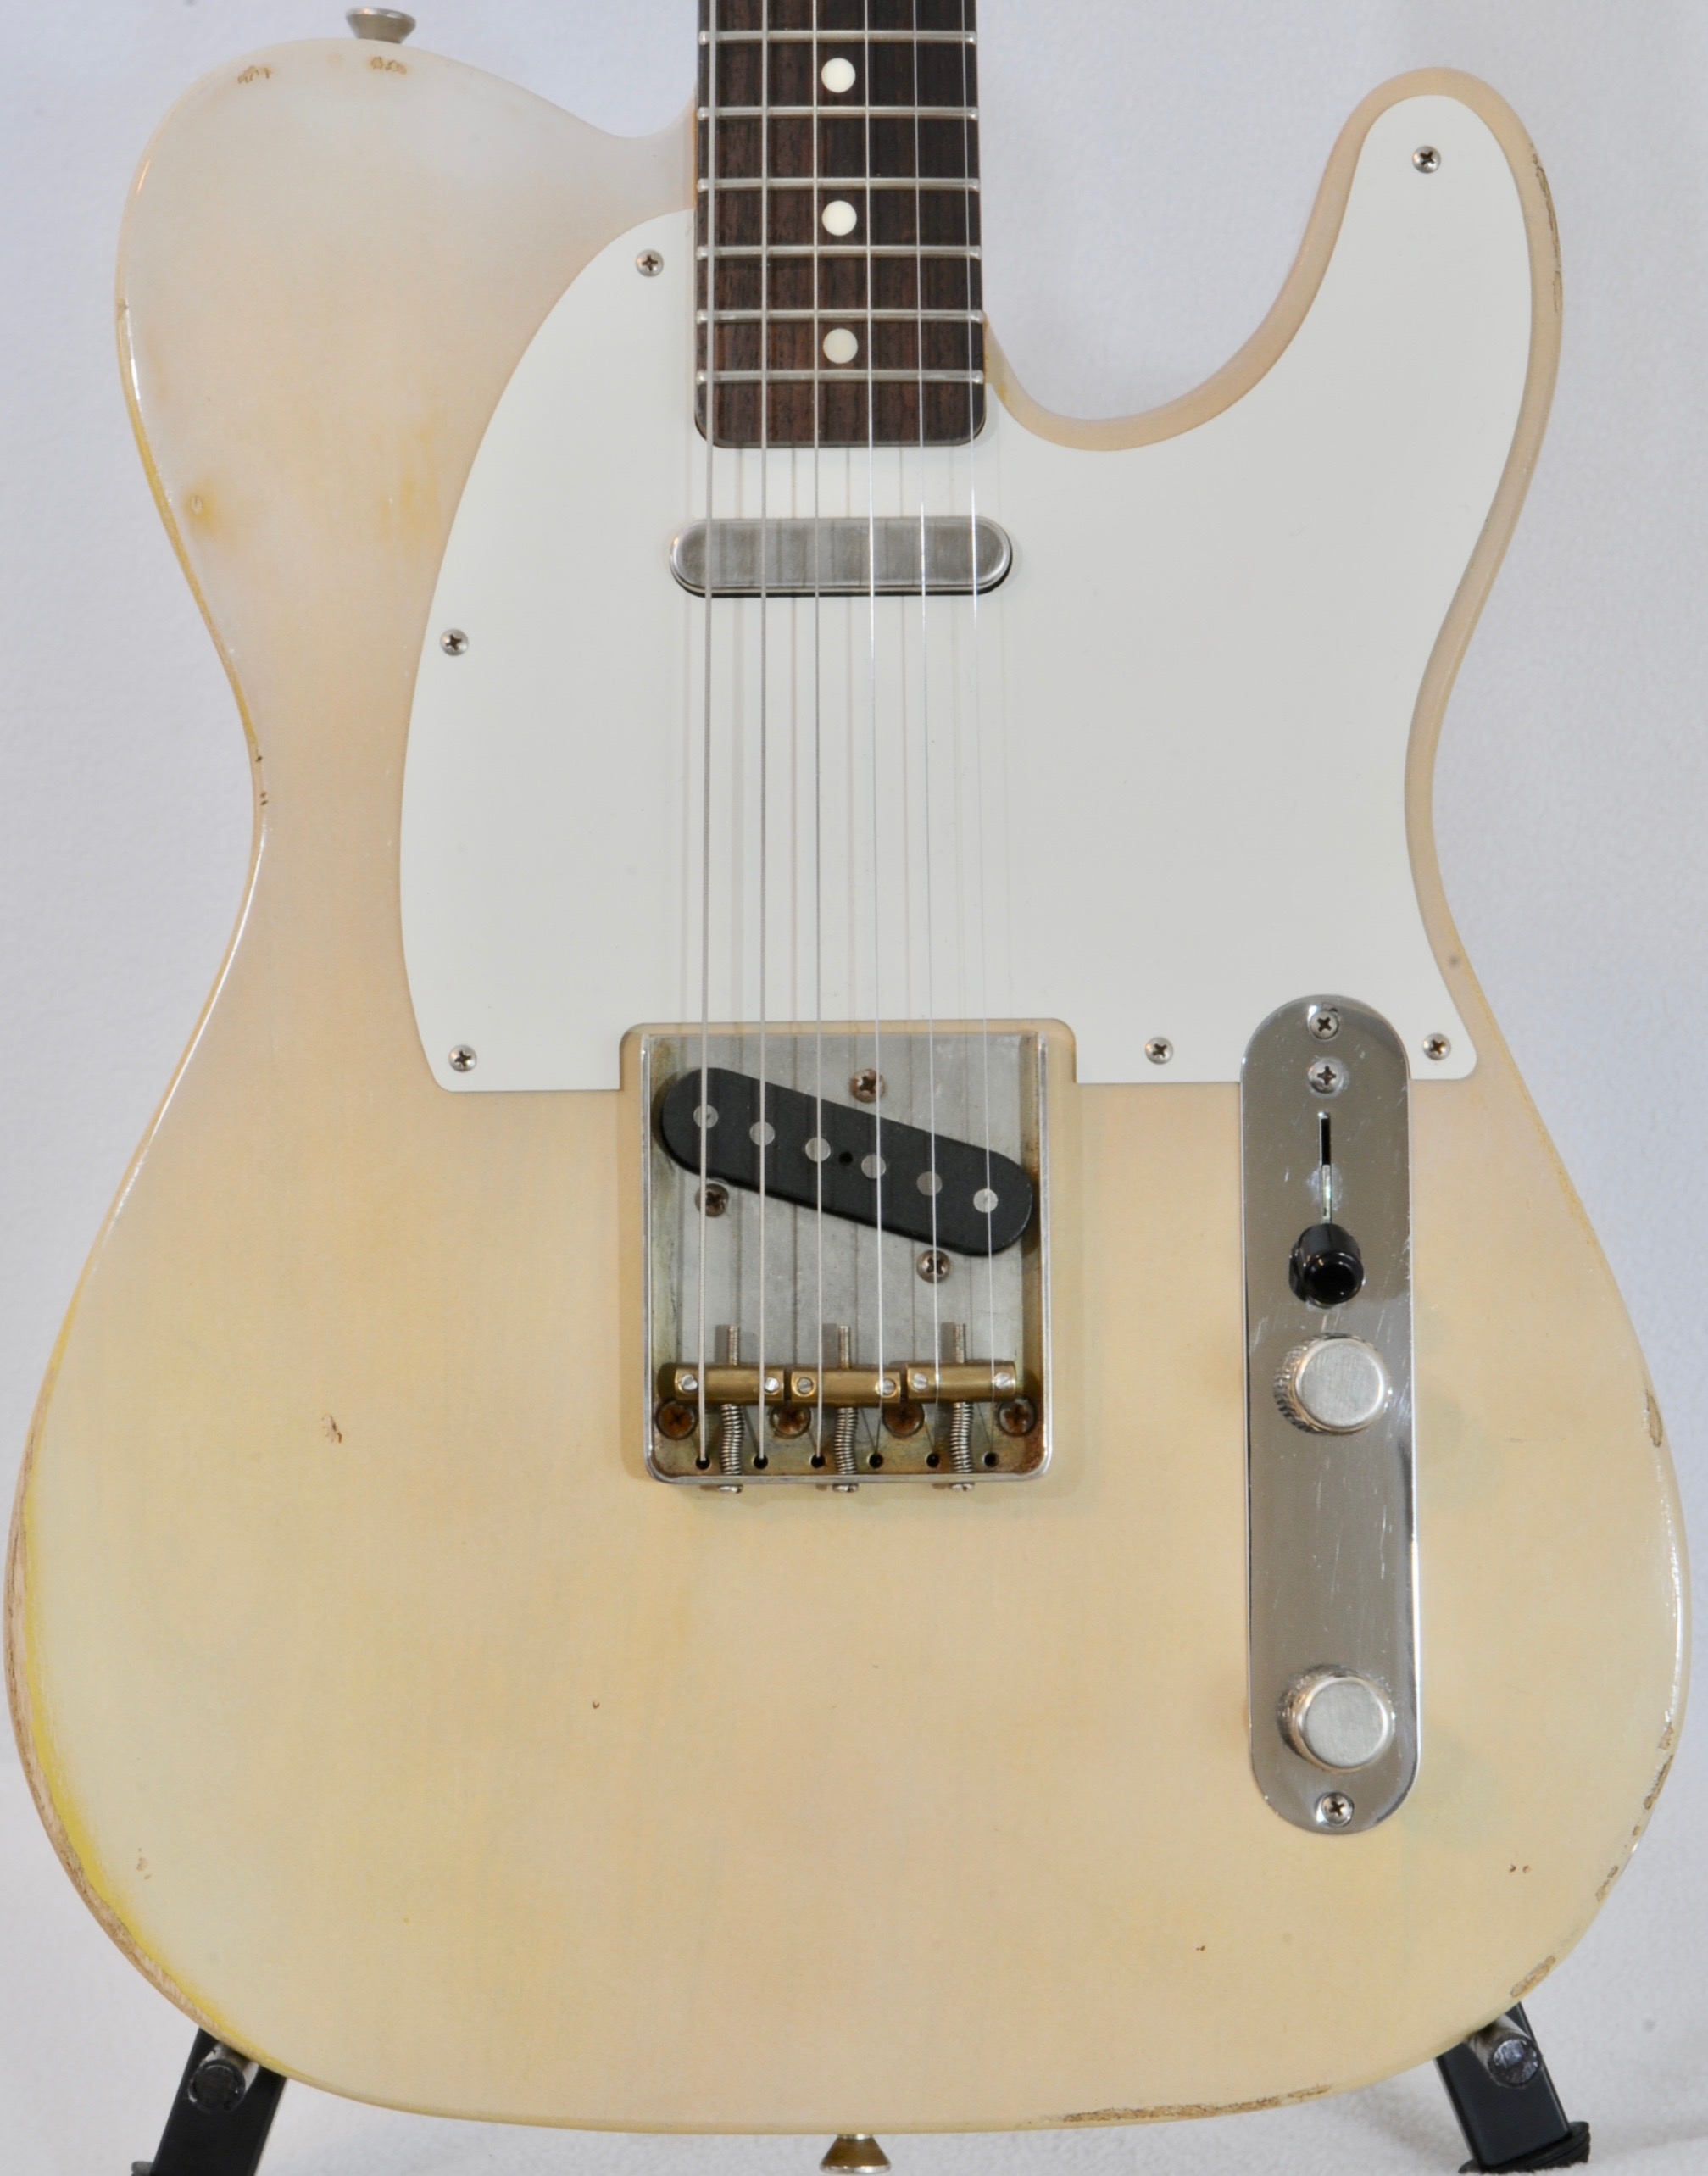 Chad UNDERWOOD Tele